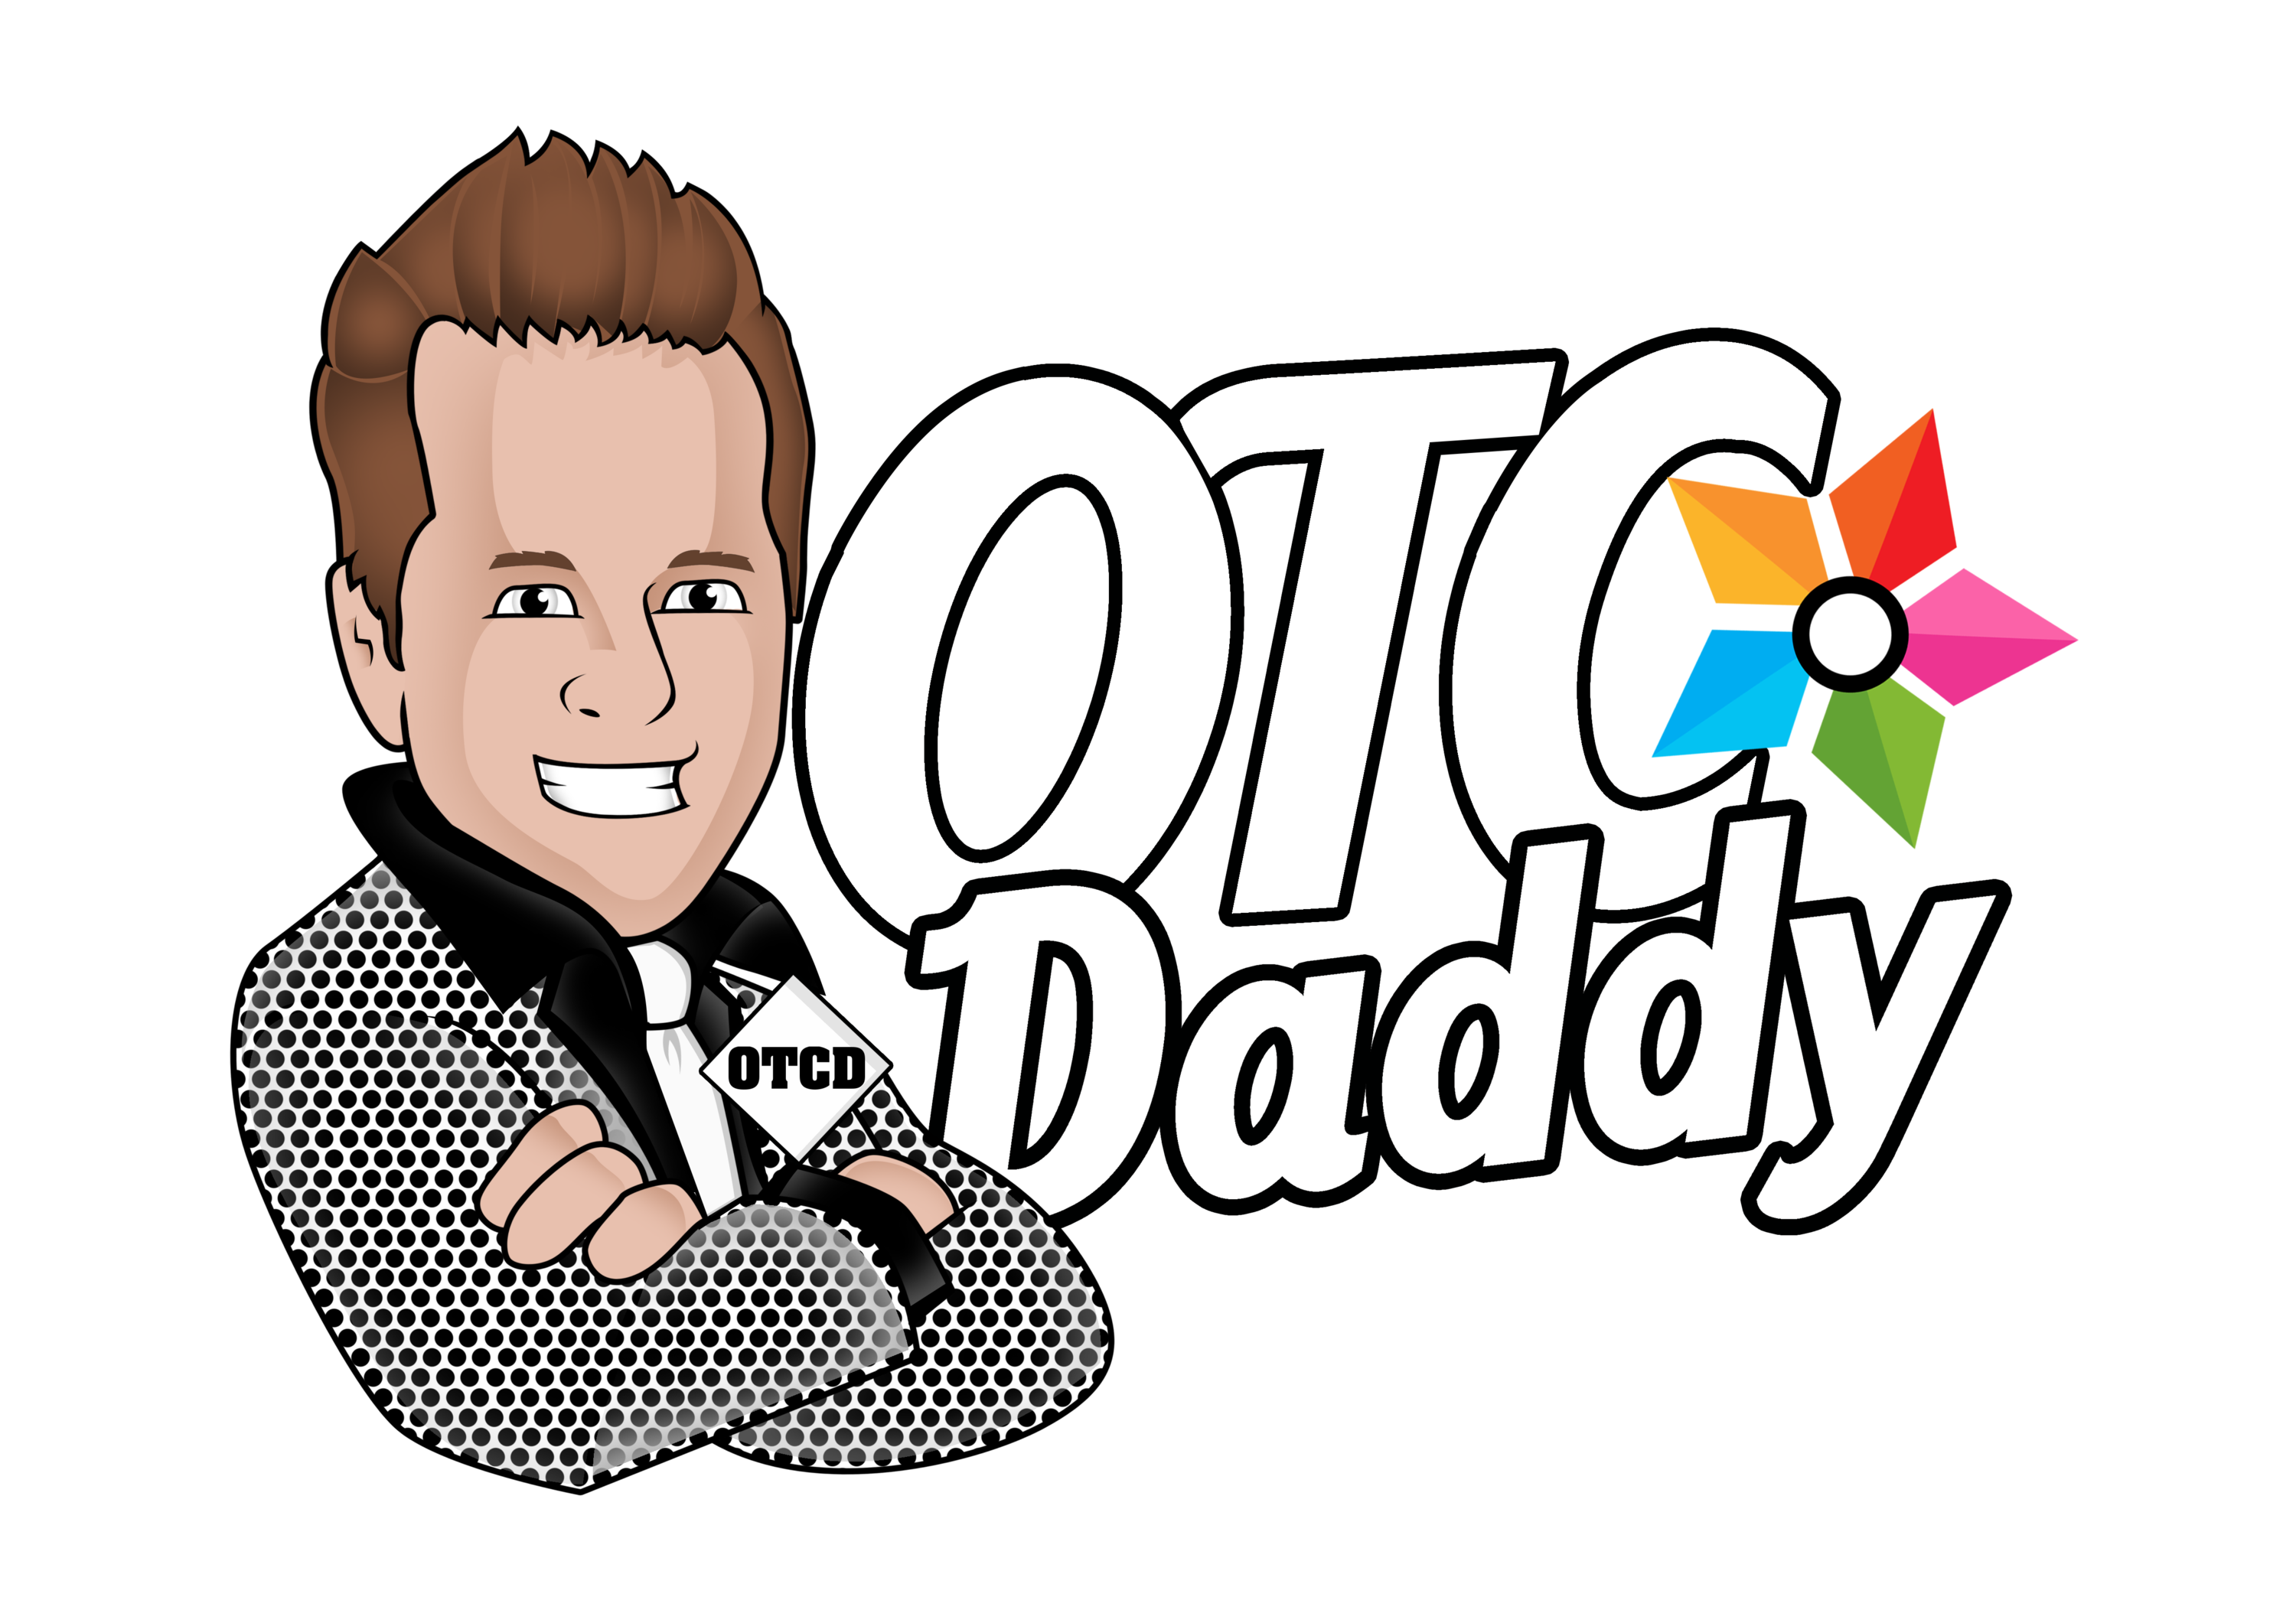 Otc daddy are you. News clipart news alert